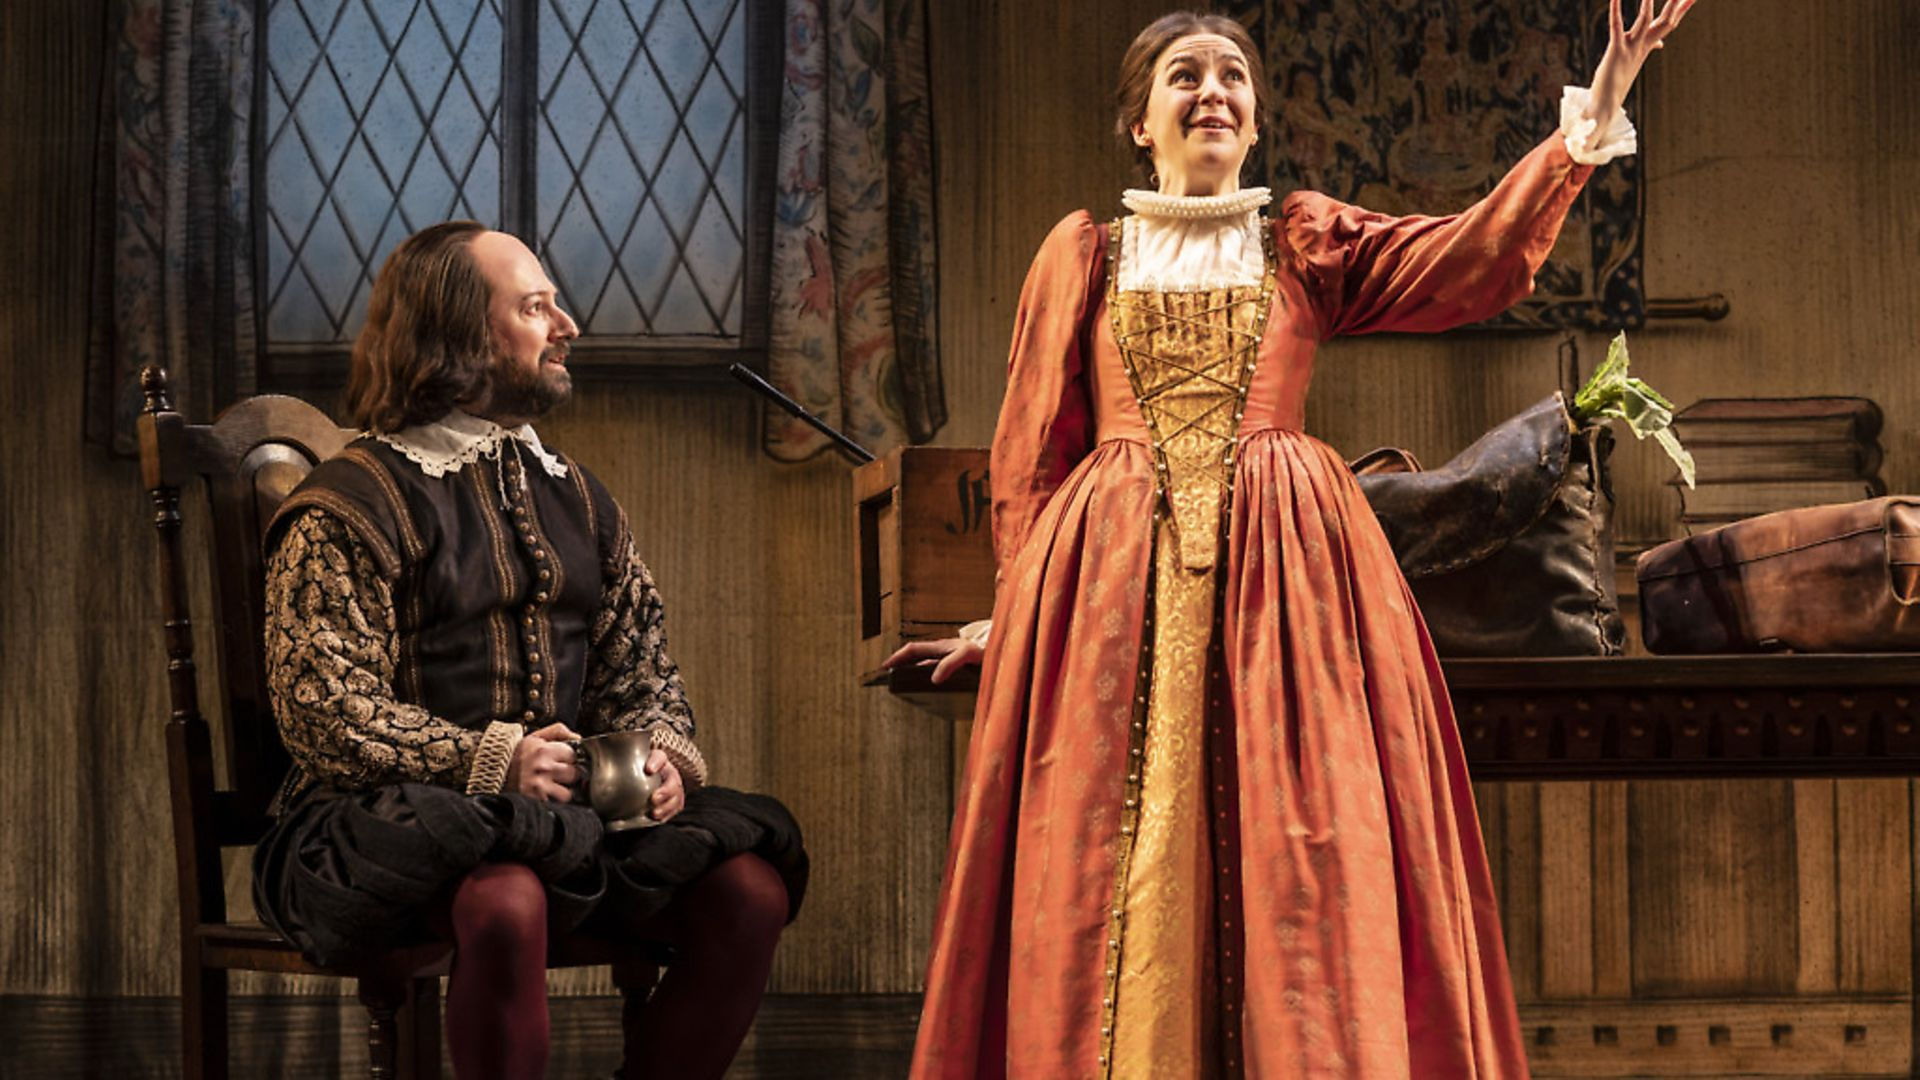 David Mitchell and Gemma Whelan in Upstart Crow at the Gielgud Theatre. Photograph: Johan Persson - Credit: Archant